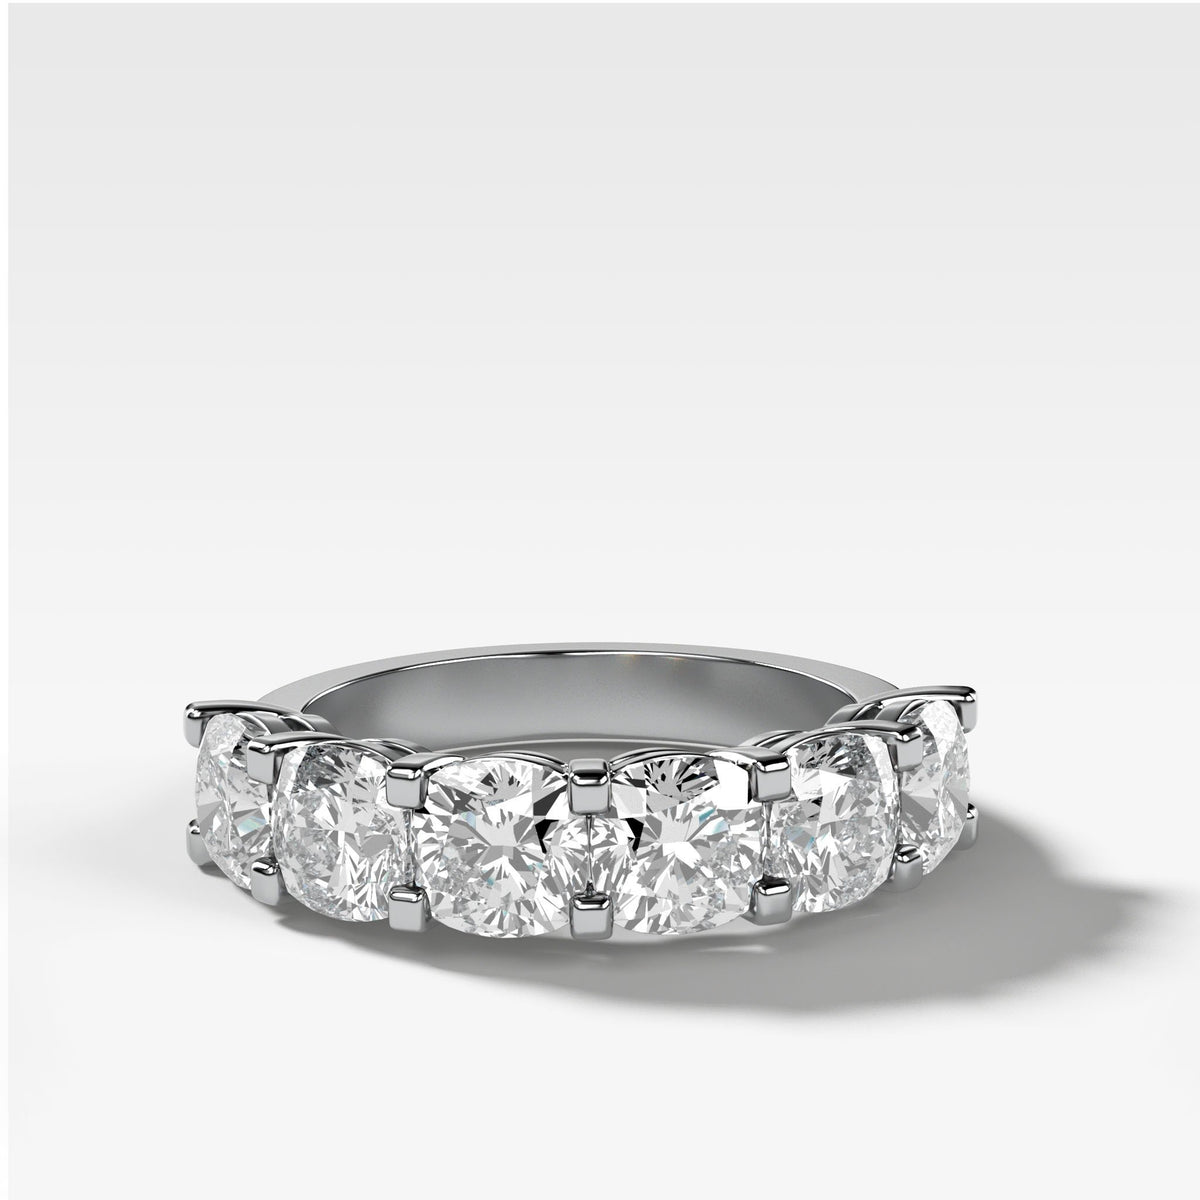 Six Stone Shared Prong Diamond Band With Cushion Cuts In White Gold By Good Stone